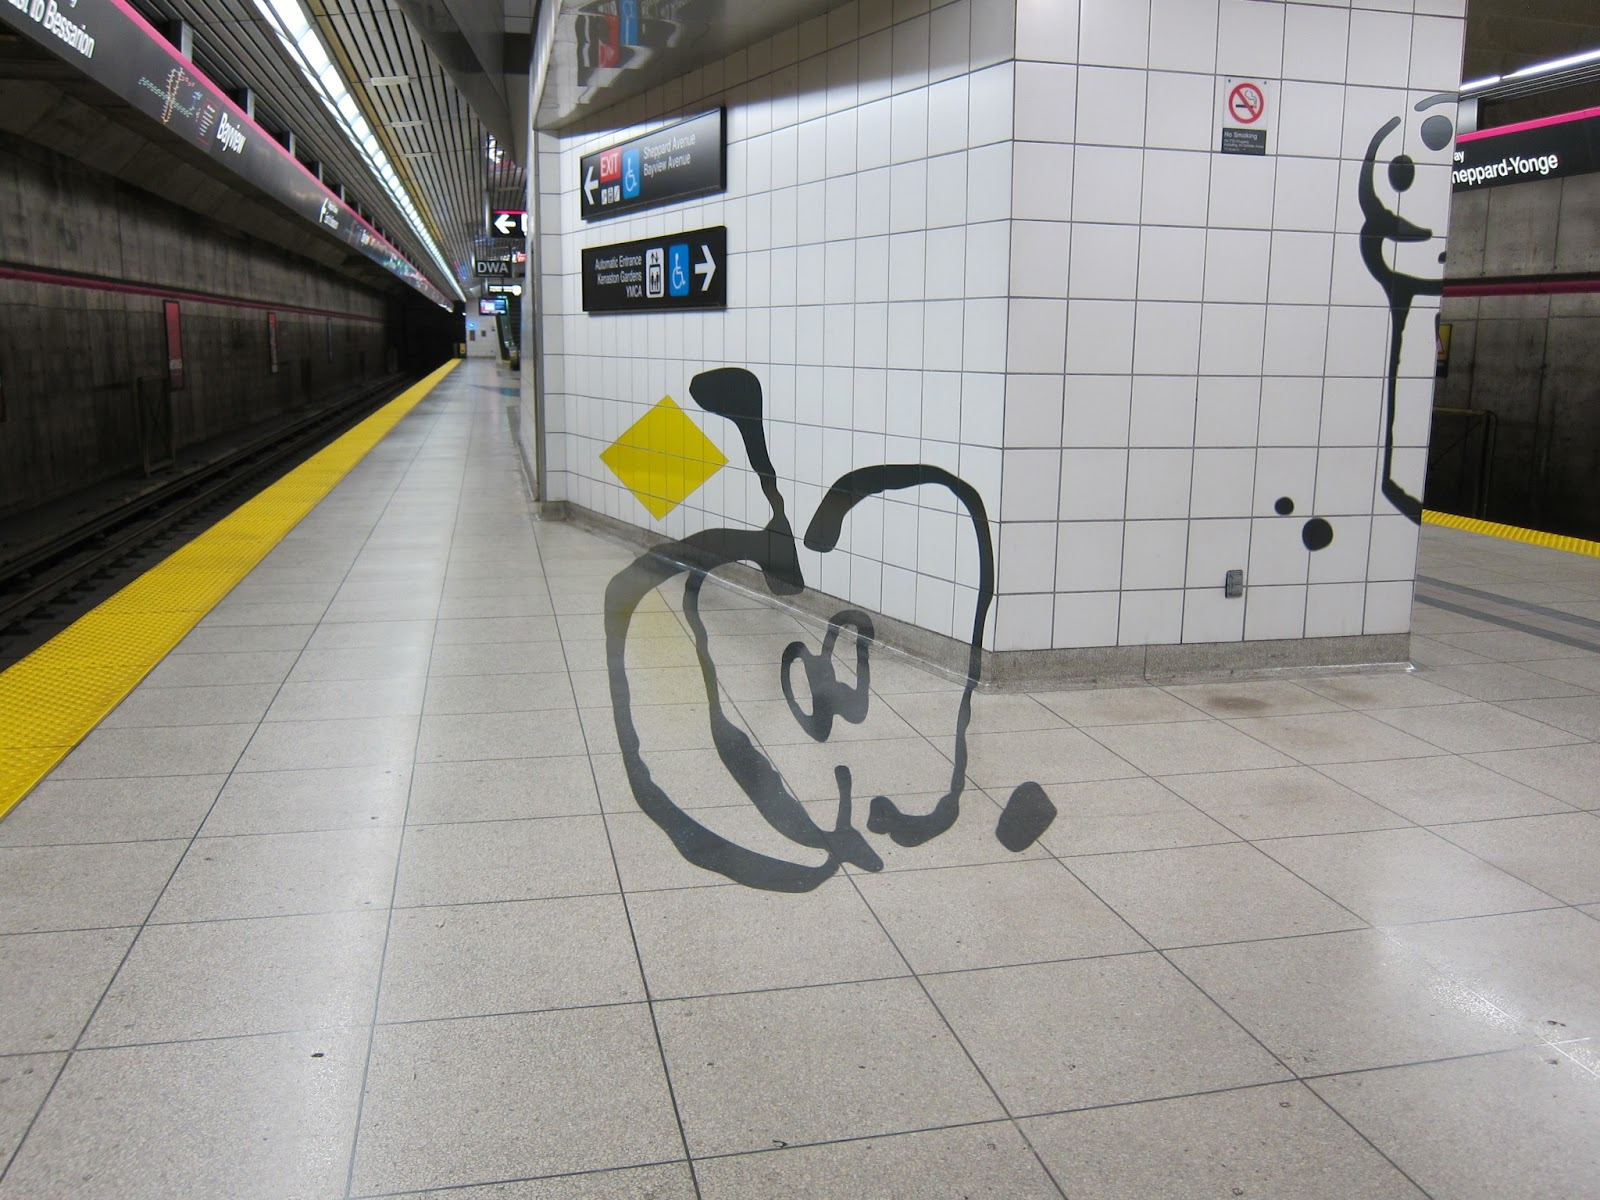 Photo: Anamorphic apple slice image at platform level